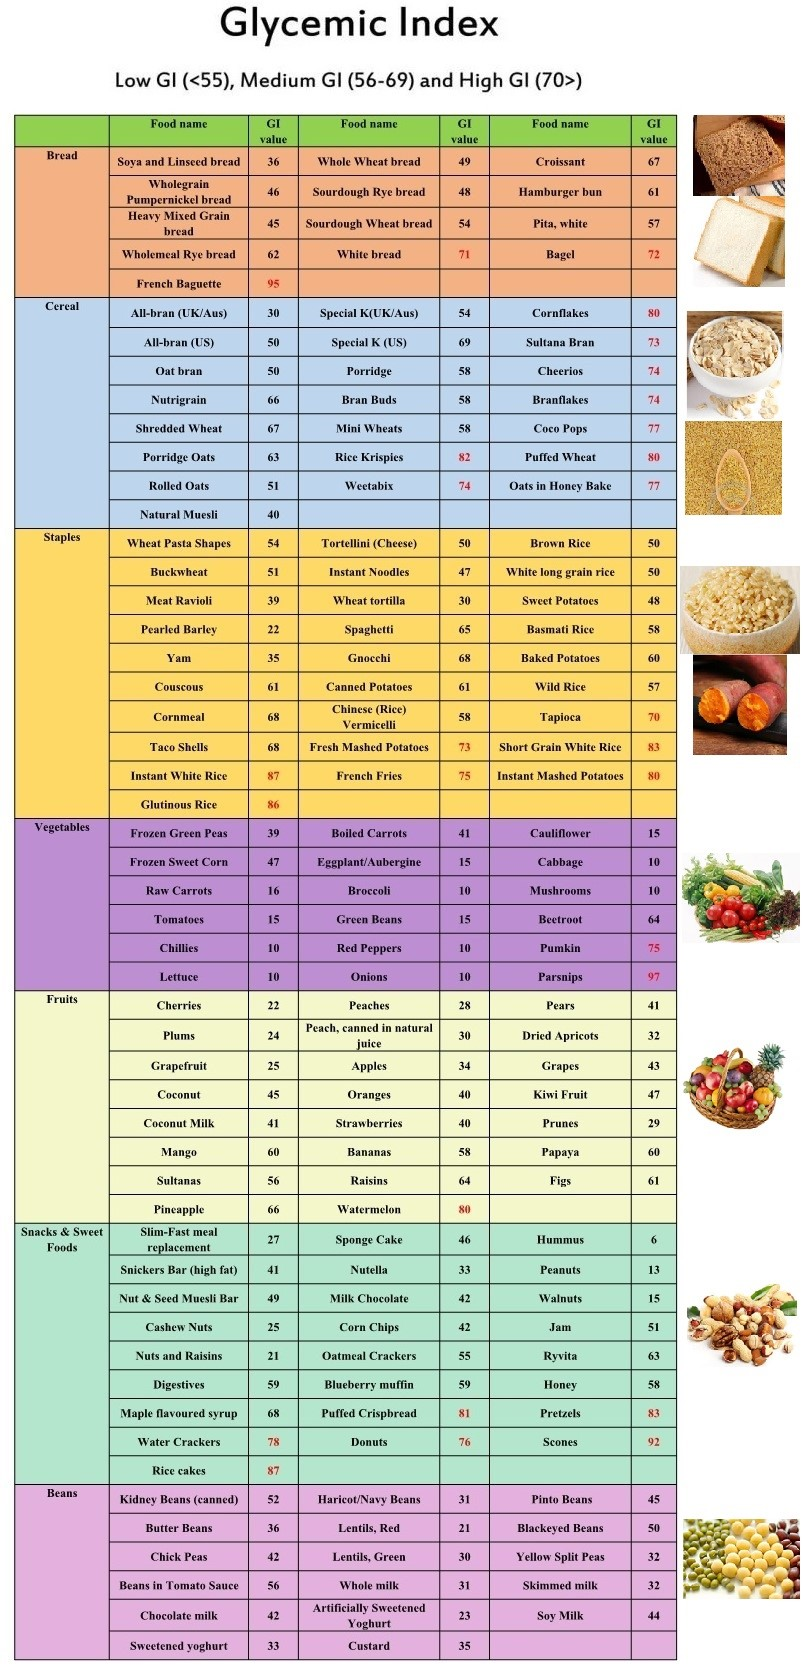 Table of glycemic index of different foods. It lists the GI table of different foods under the category of bread, cereals, staples, vegetables, fruits, snacks, desserts, legumes, etc. Acne sufferers can choose foods based on the GI values listed in this table.